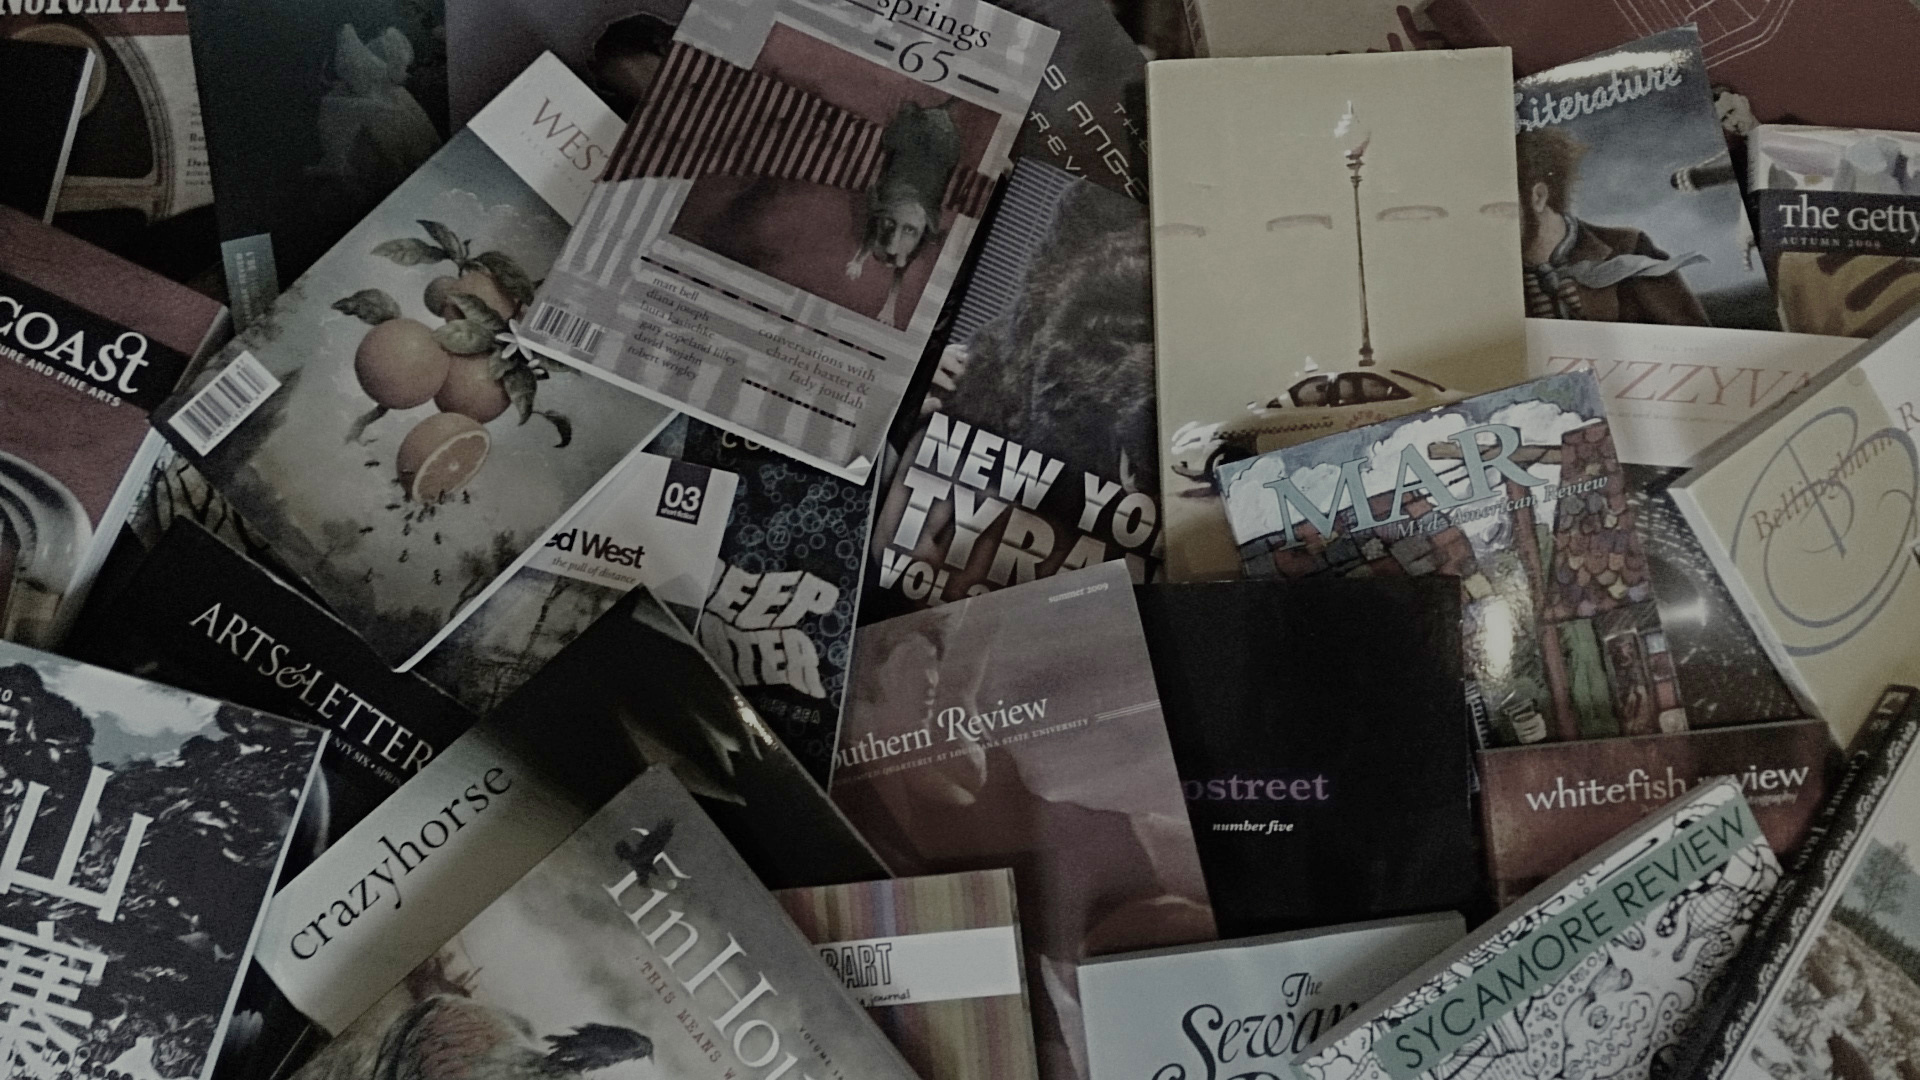 Picture of many different literary magazines sprawled and overlapping on the ground.